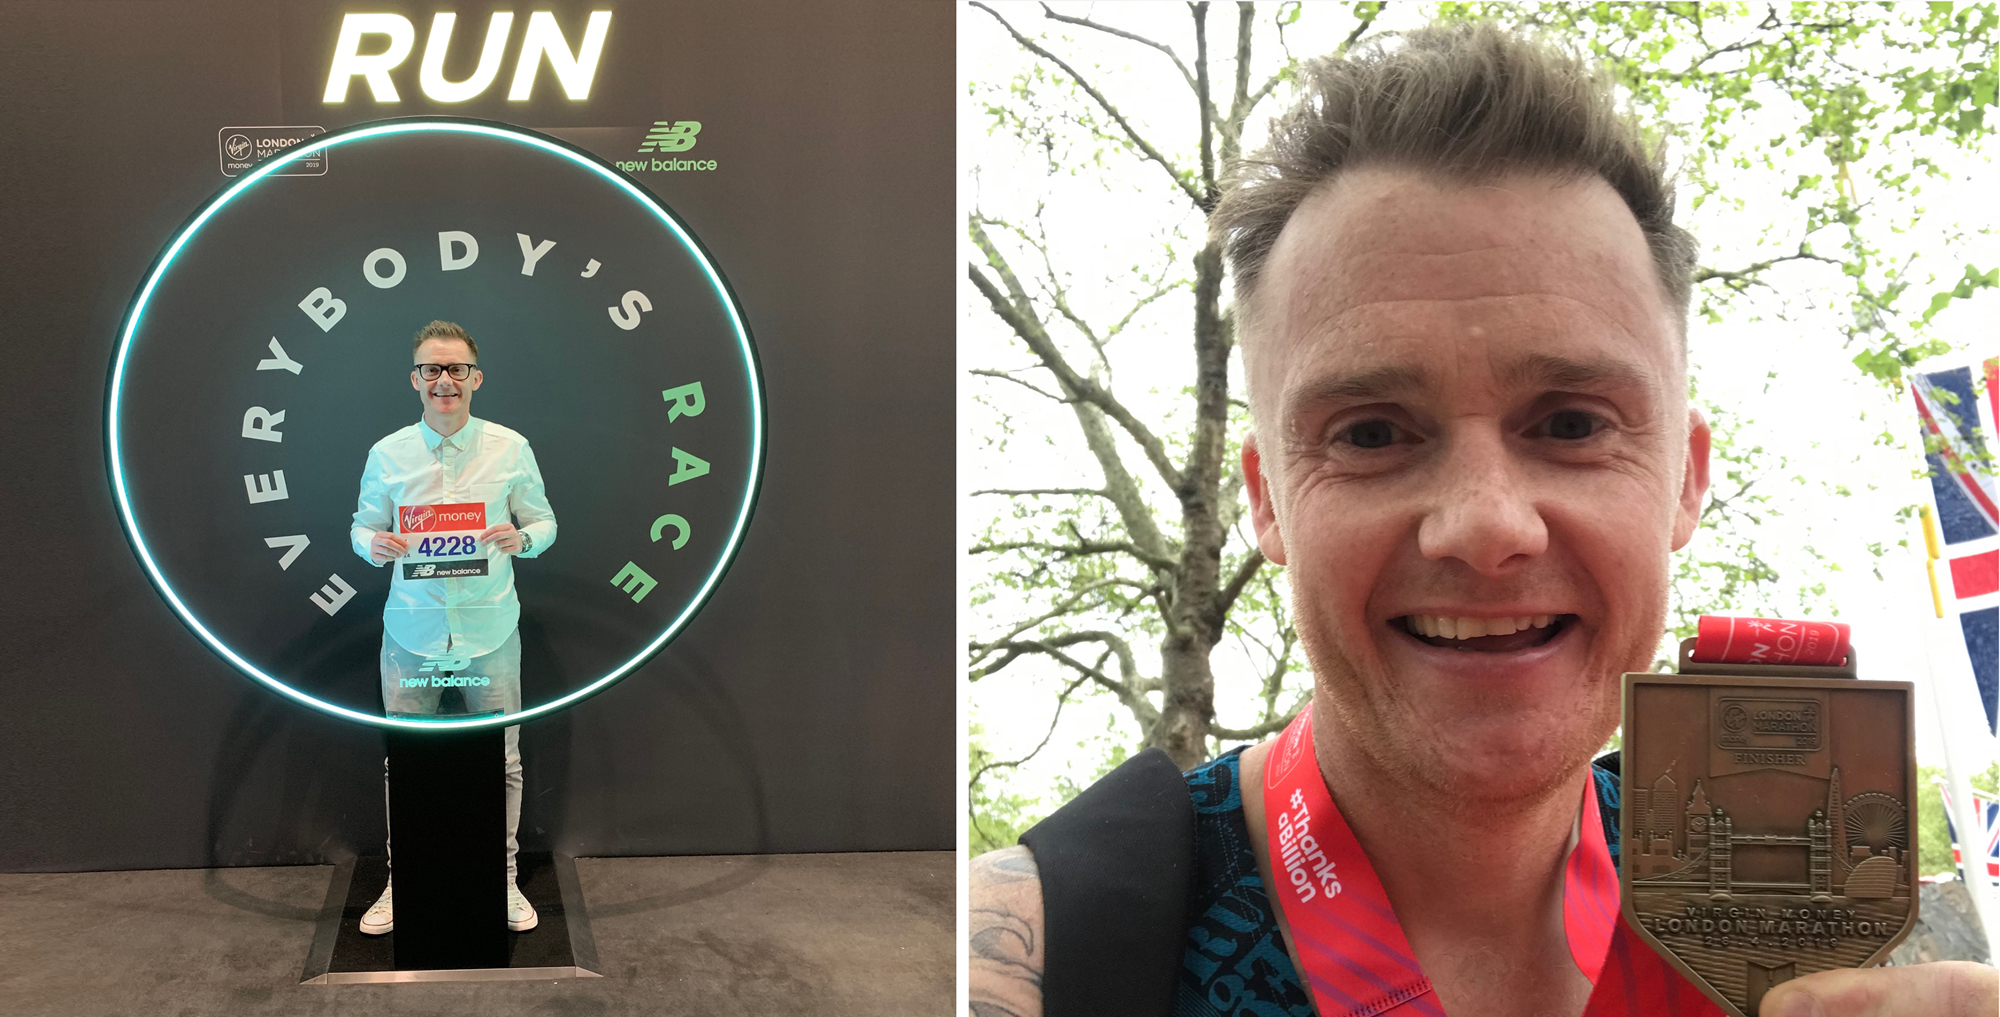 left: Jay with marathon bib number. Right: Jay with London marathon medal after finishing